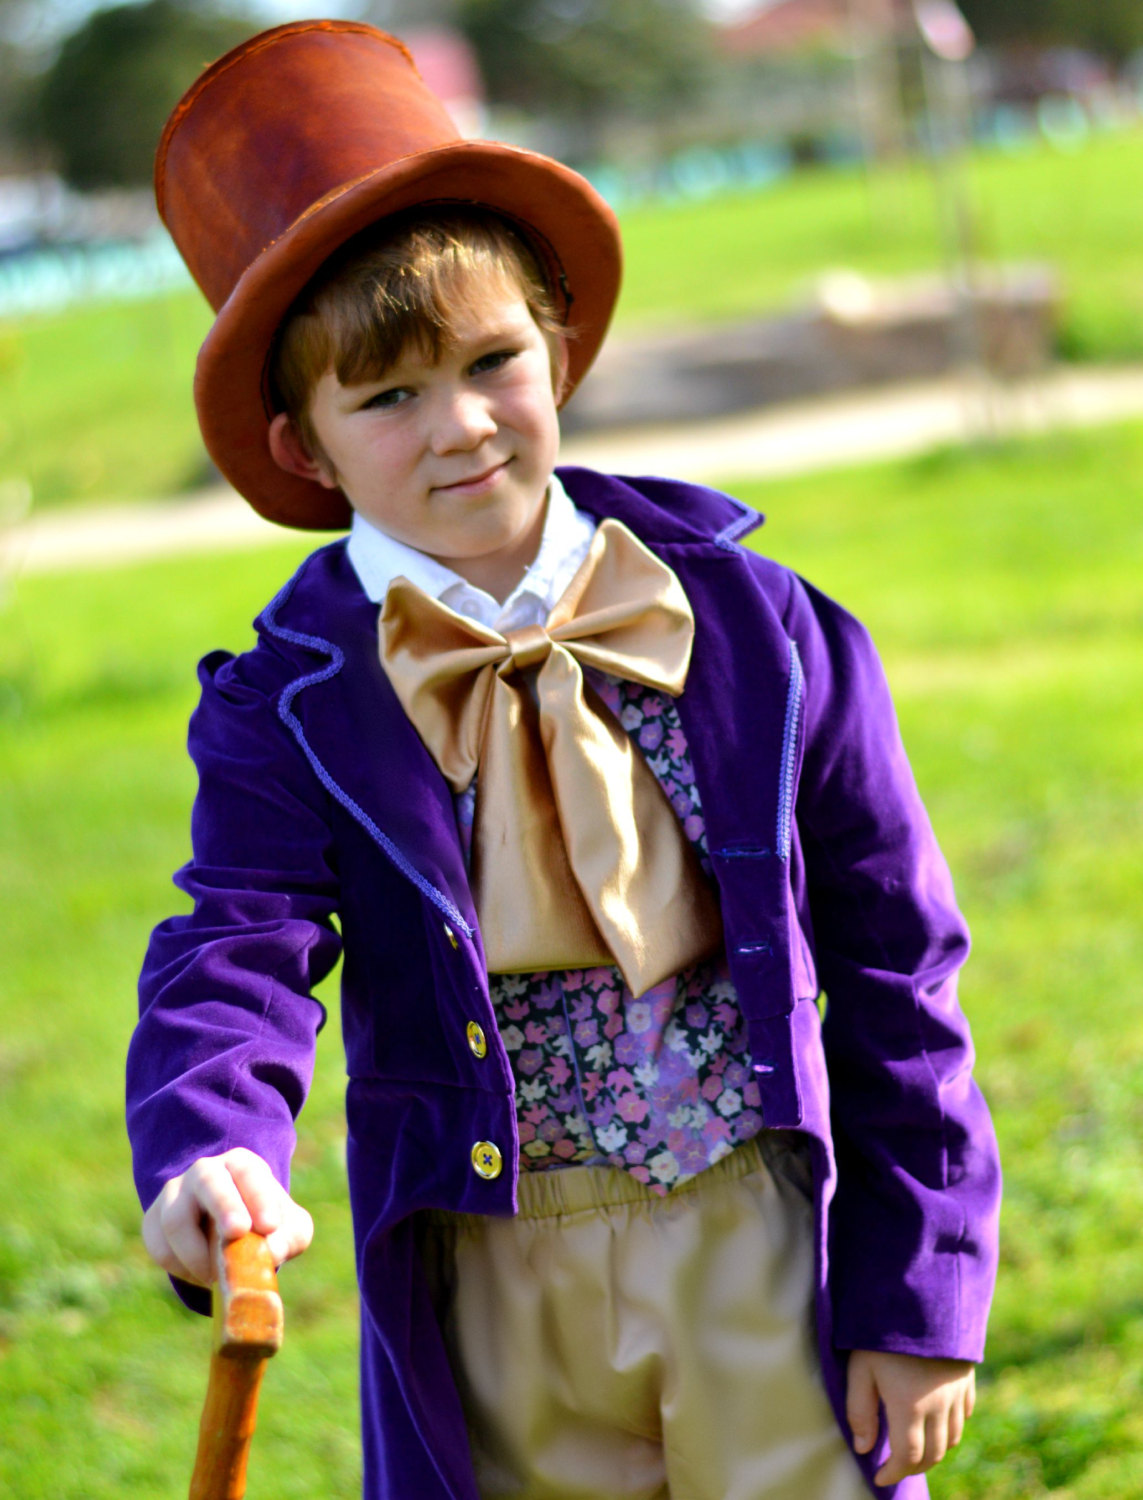 Willy Wonka Costume - Charlie and the Chocolate Factory ...